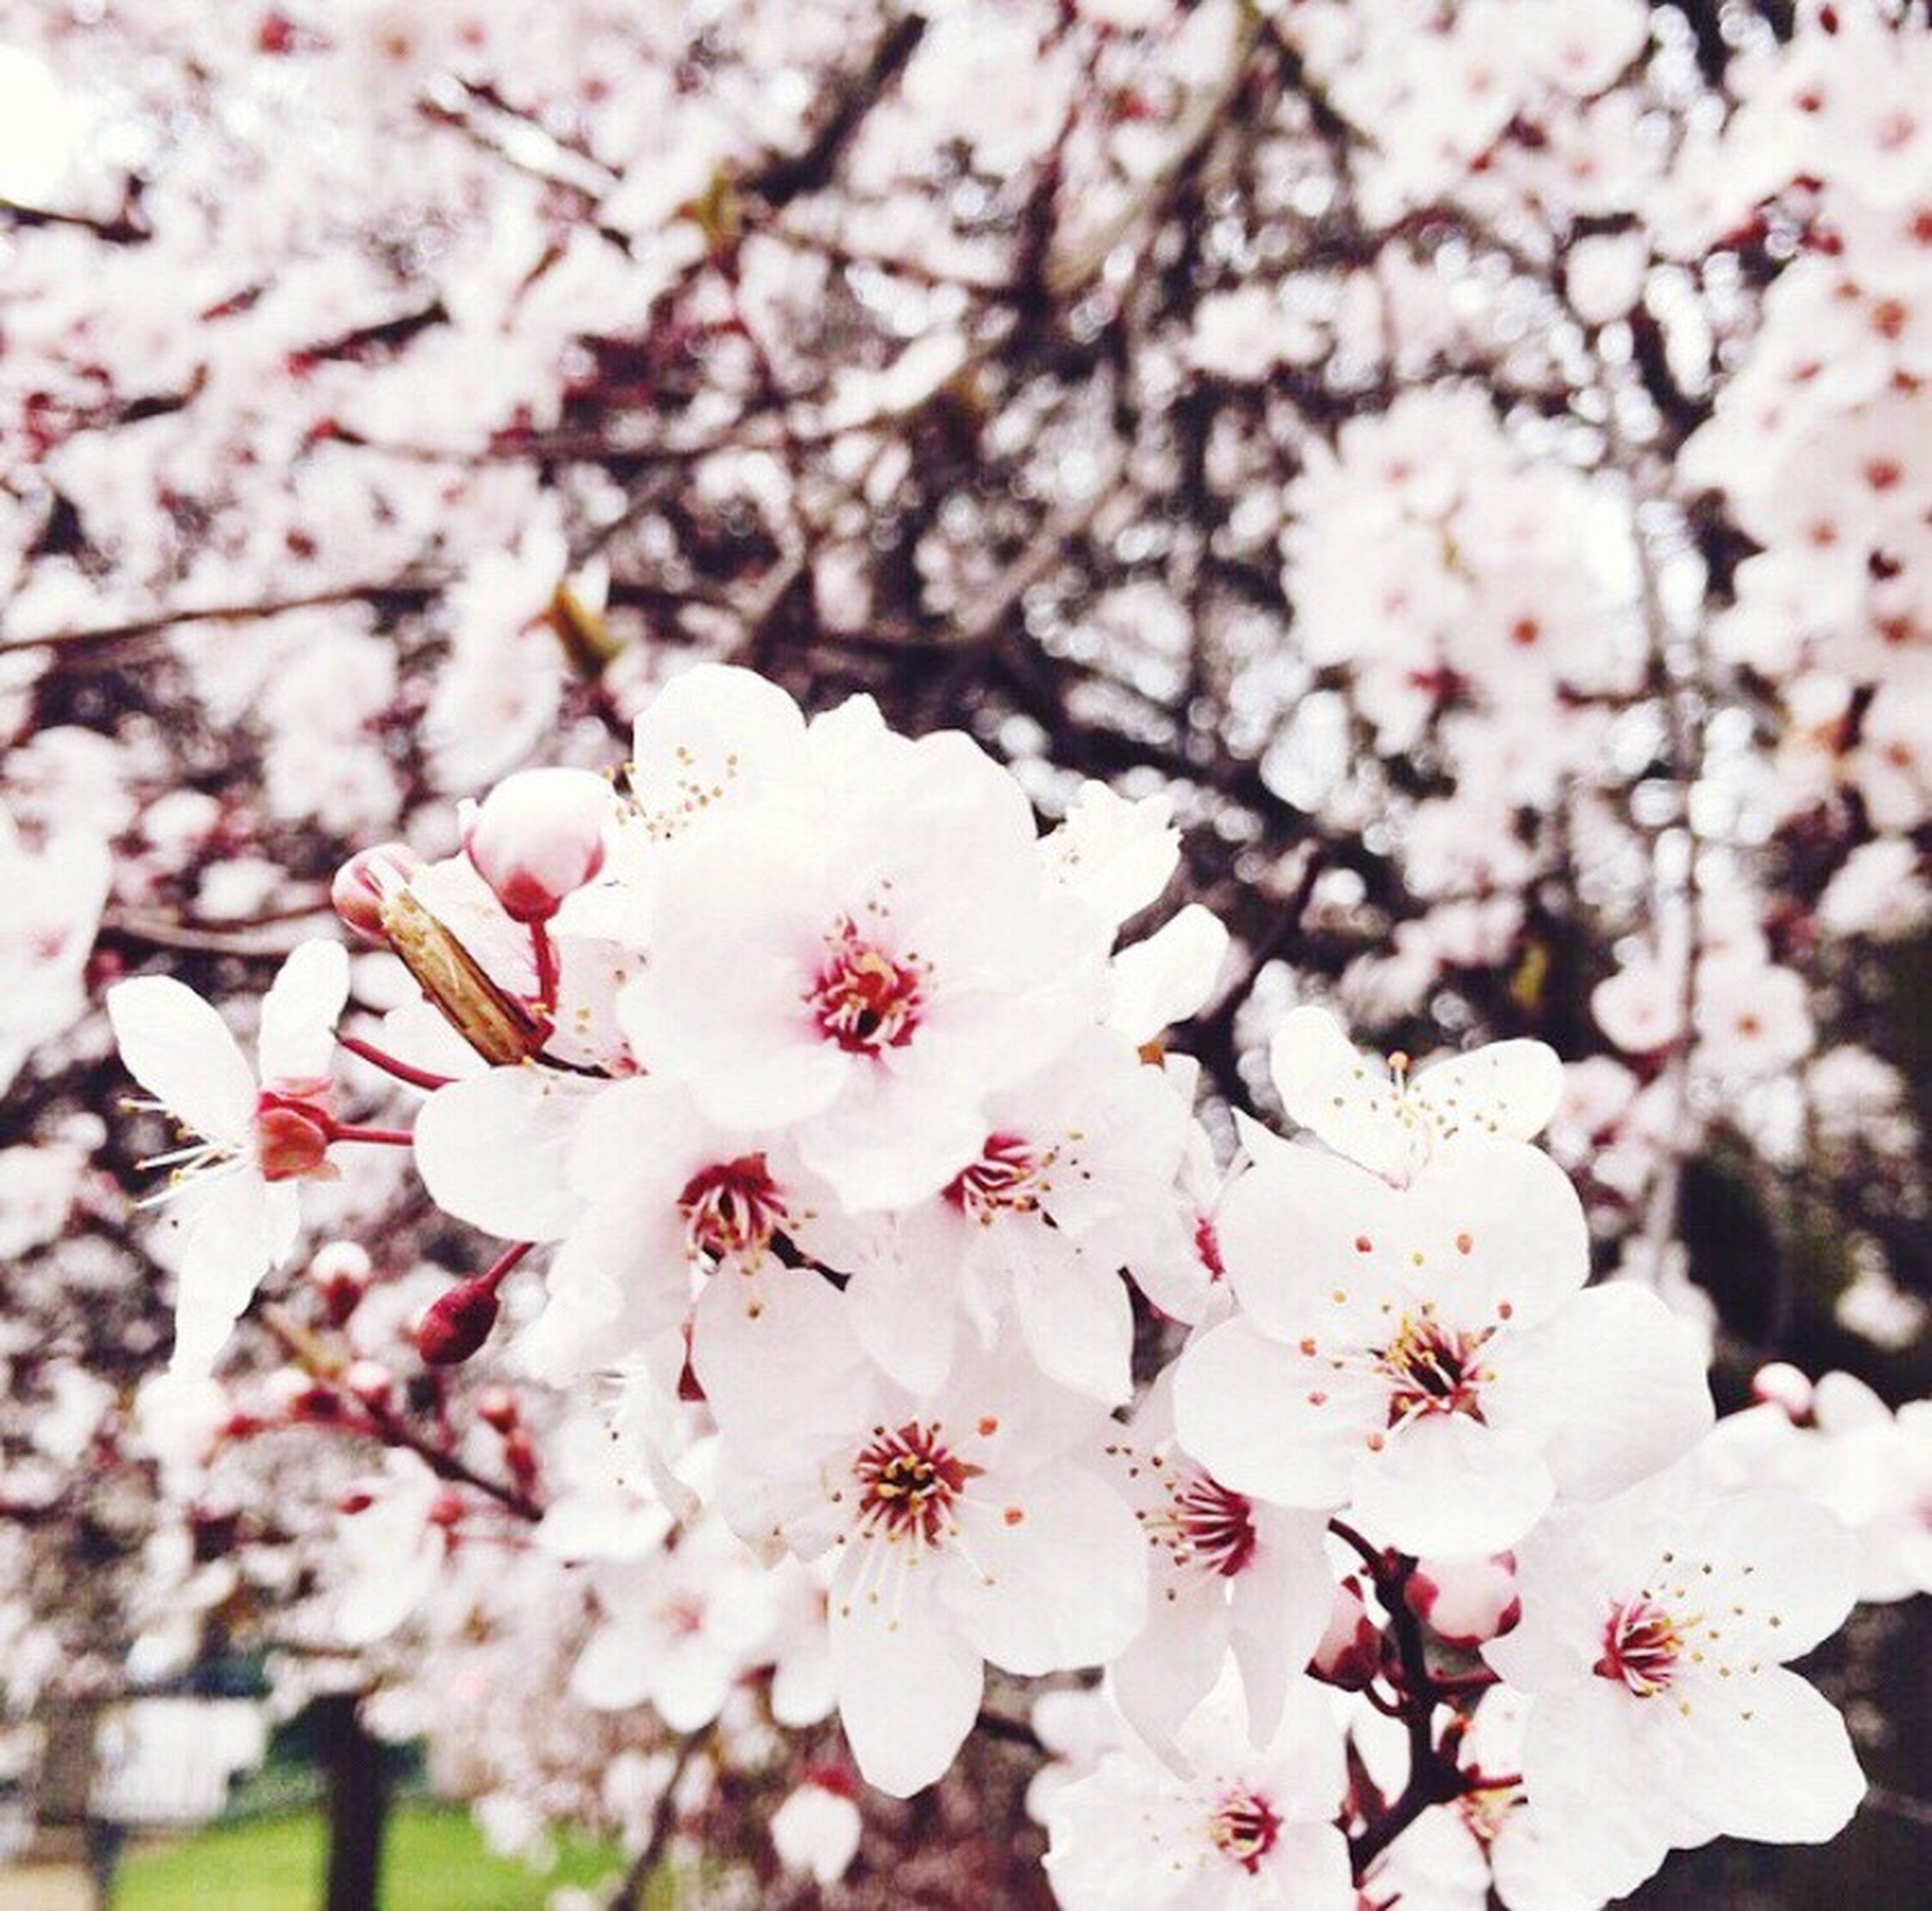 flower, freshness, cherry blossom, fragility, growth, tree, branch, beauty in nature, blossom, cherry tree, petal, nature, white color, in bloom, focus on foreground, springtime, blooming, close-up, flower head, fruit tree